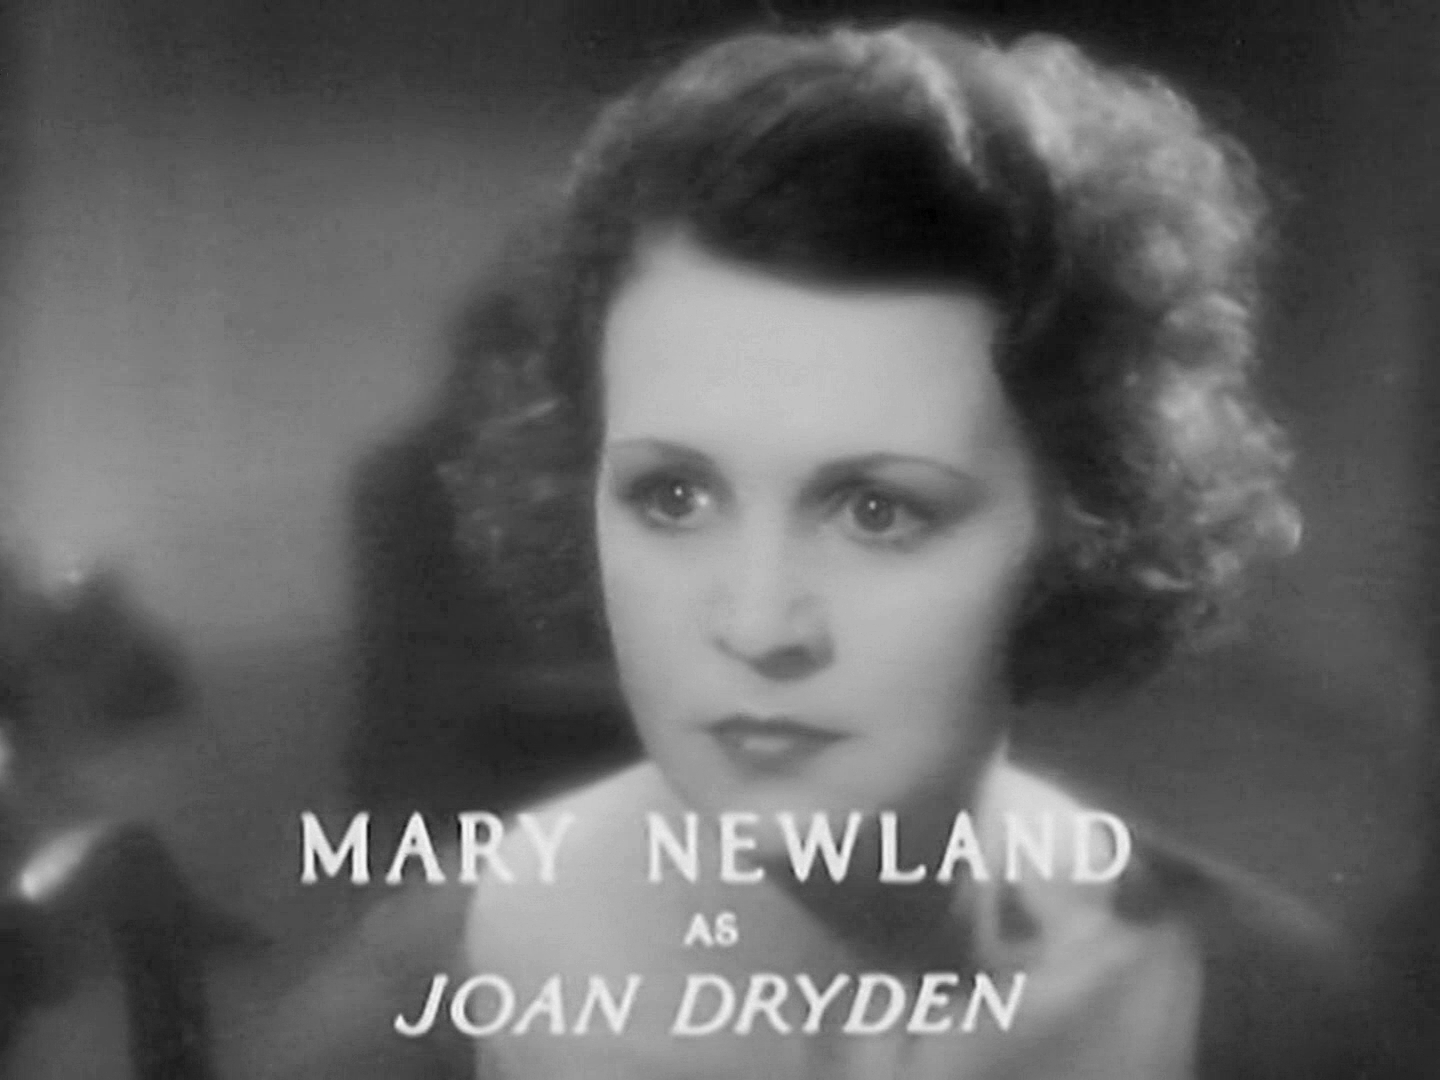 Main title from Death at Broadcasting House (1934) (6). Lilian Oldland (as Mary Newland) as Joan Dryden